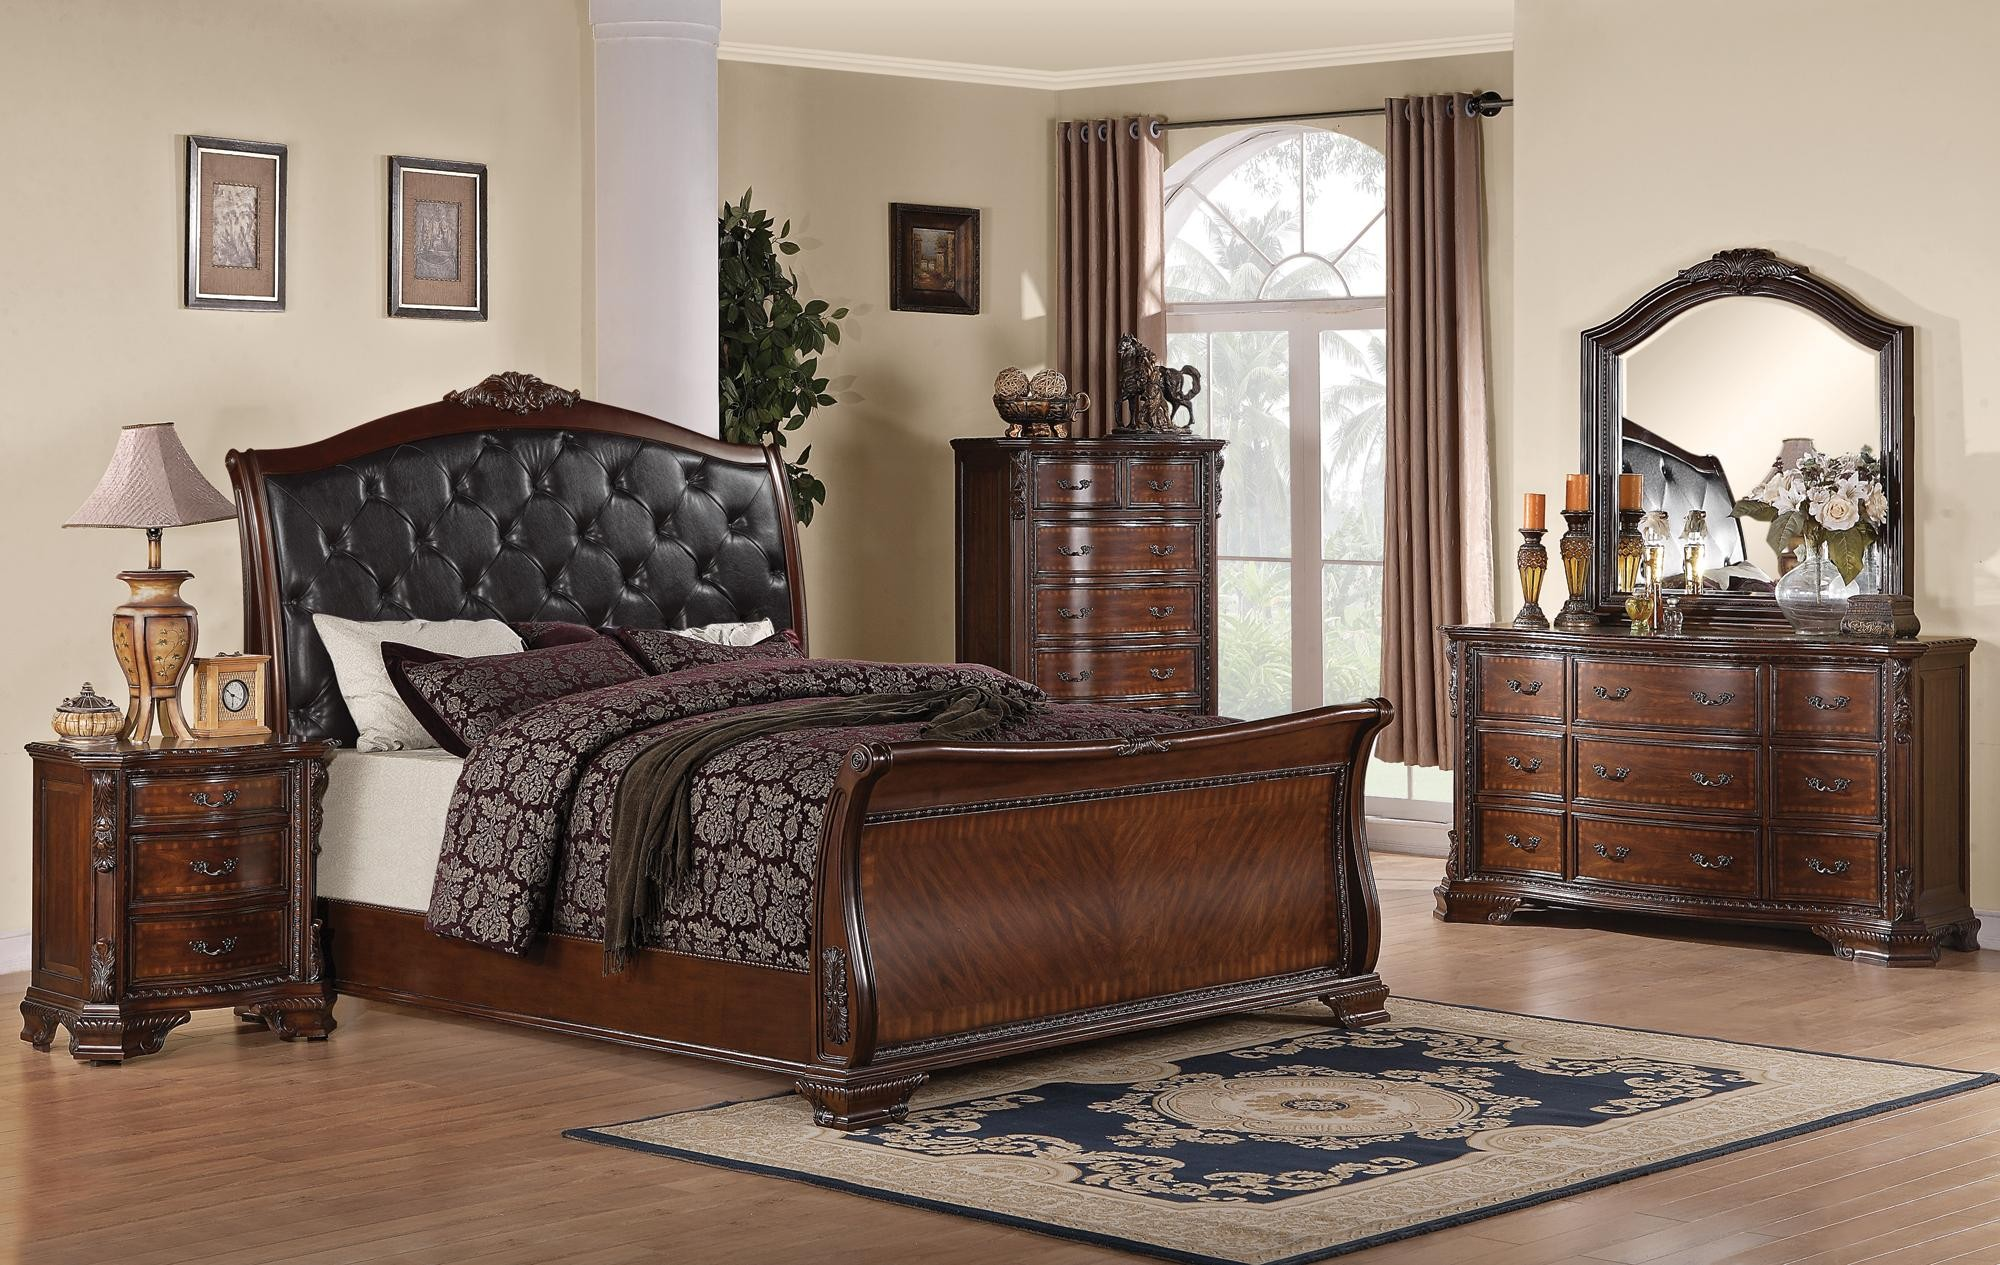 Maddison Sleigh Upholstered Bedroom Set From Coaster 202261 Coleman Furniture